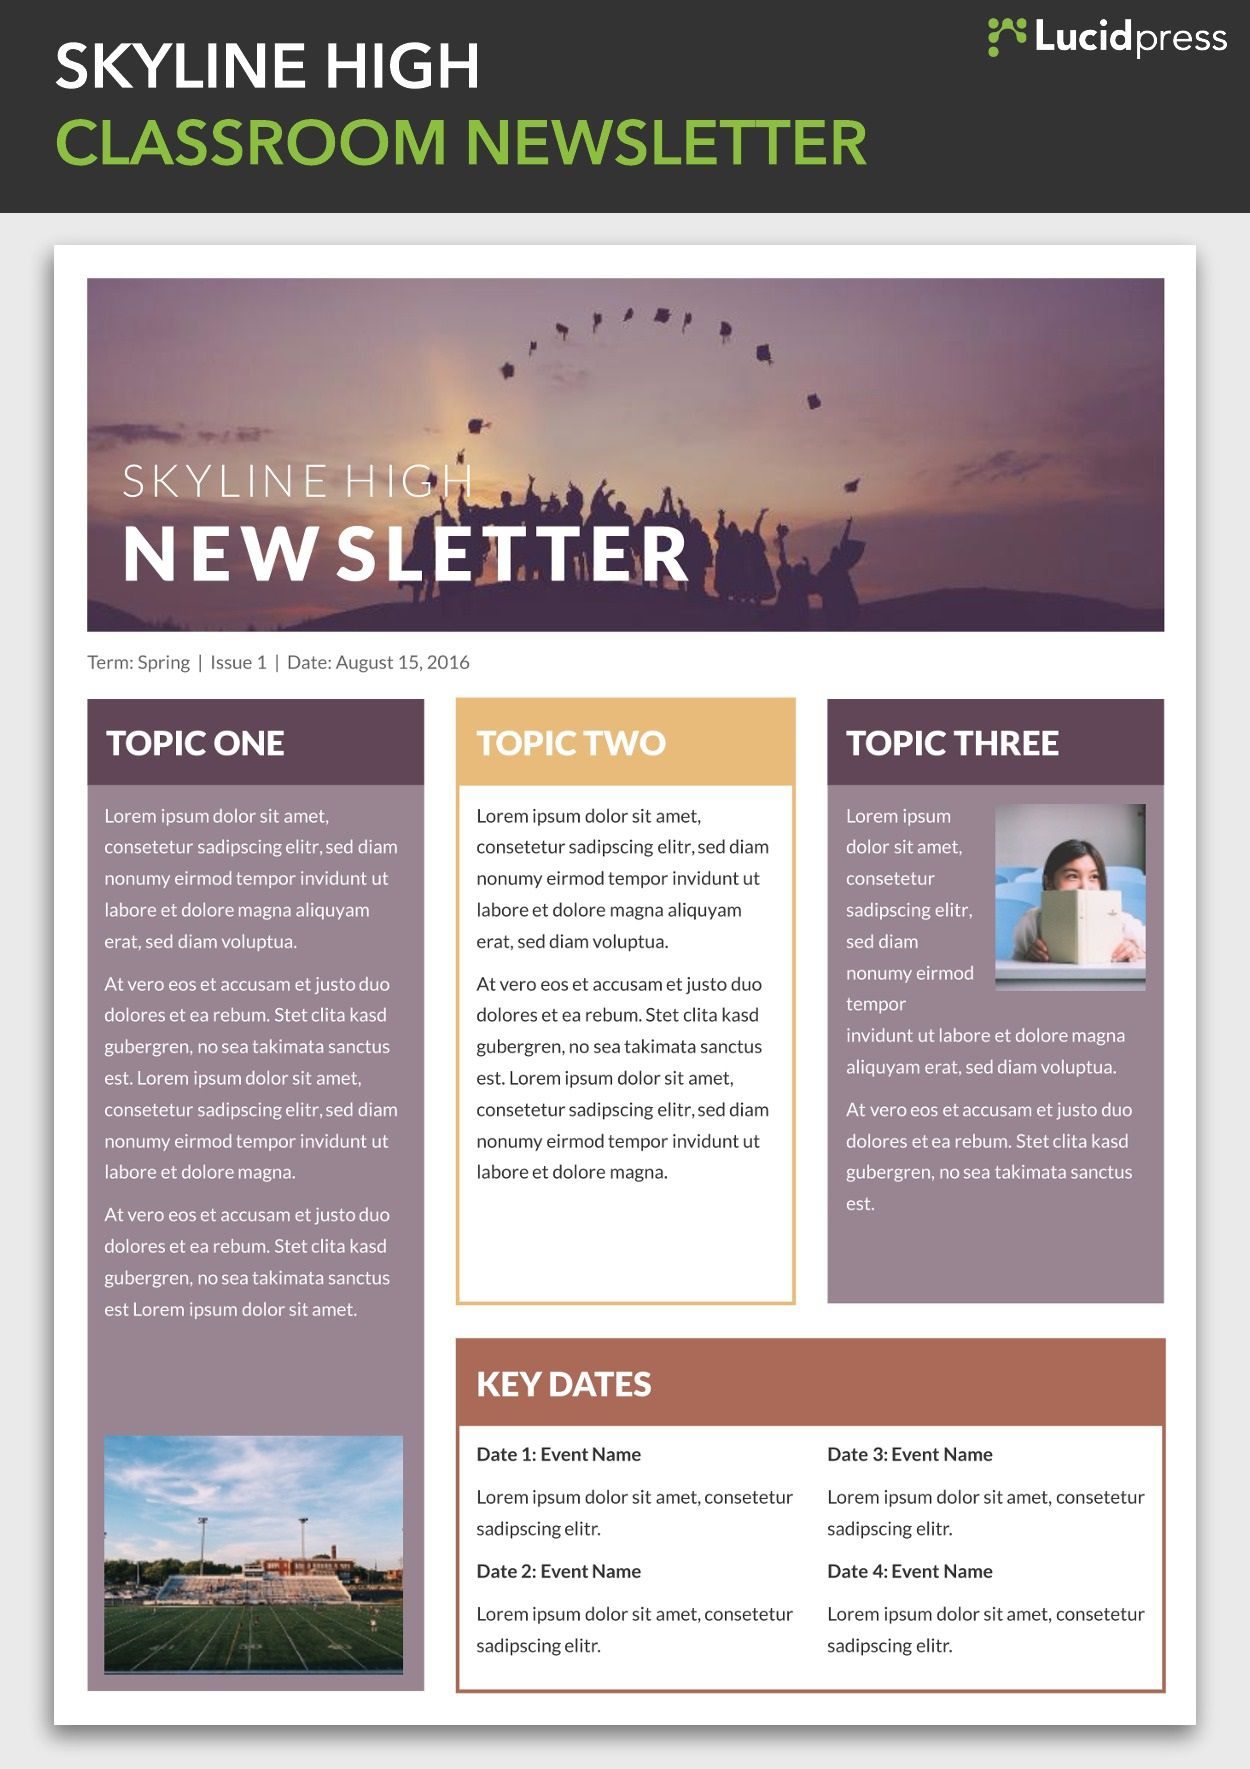 004 Simple School Newsletter Template Free Photo  Word Download CounselorFull